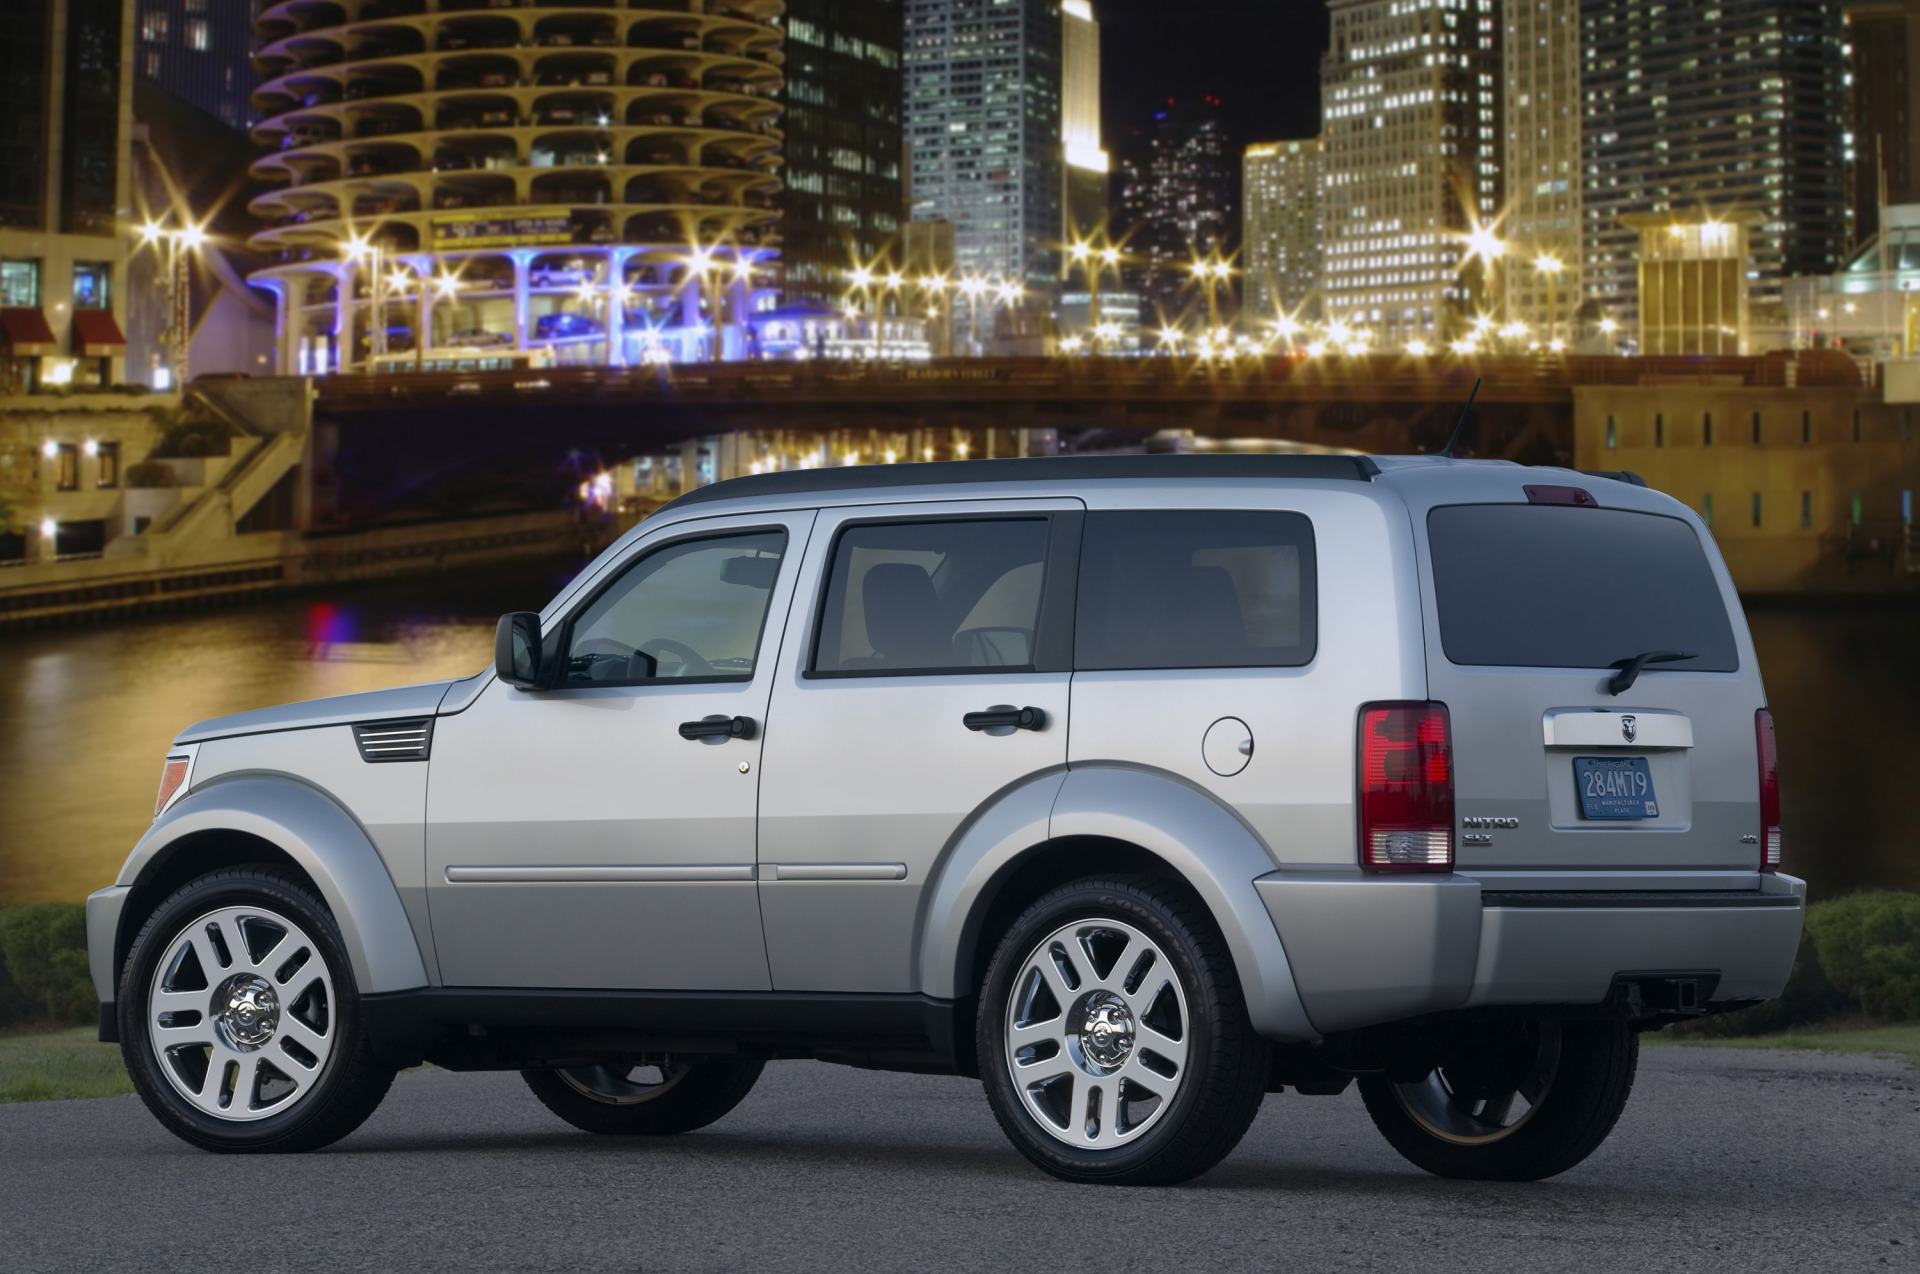 Ford Suv Models >> 2008 Dodge Nitro News and Information - conceptcarz.com